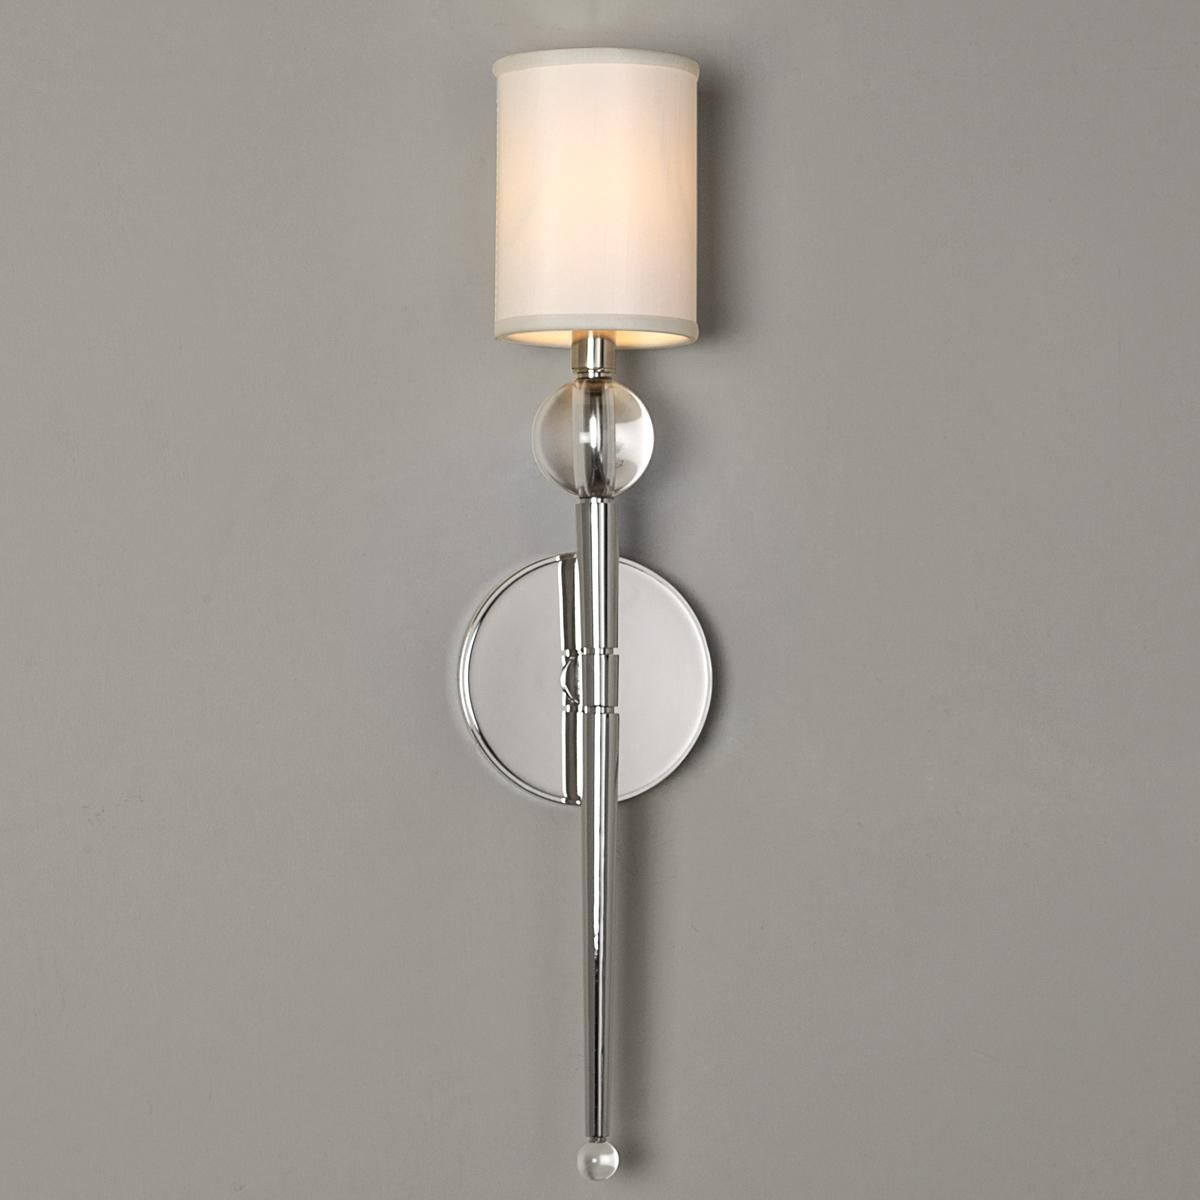 Crystal Wall Sconces Bathroom : Crystal Ball and Elongated Torch Wall Sconce Crystal ball, Torches and Wall sconces